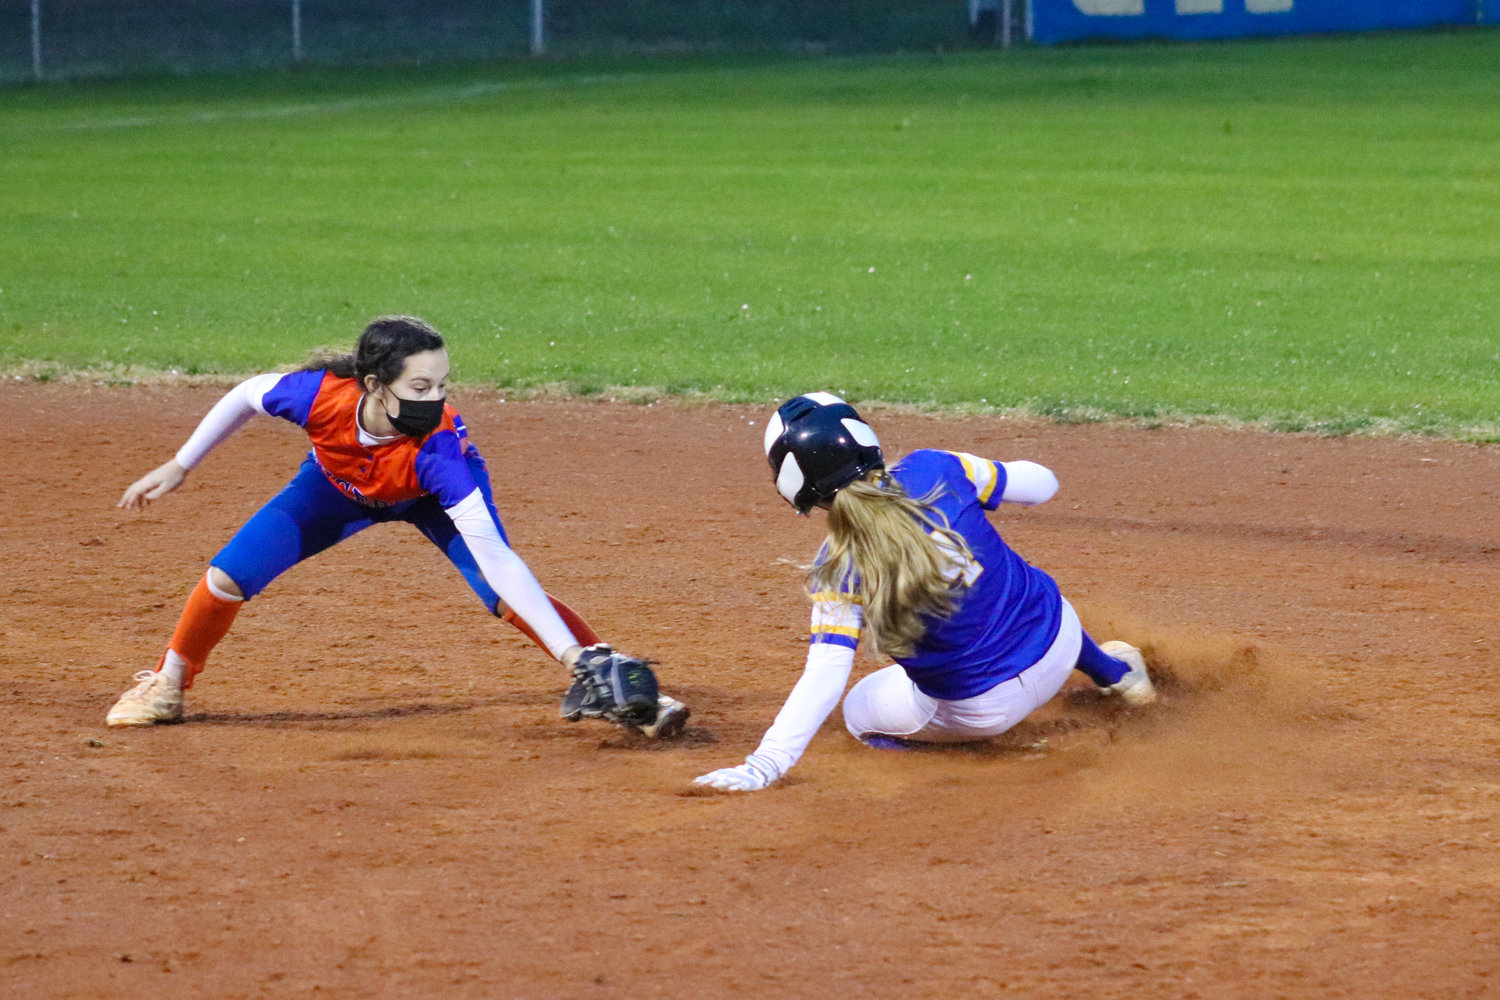 Jordan-Matthews senior second baseman Eve Long (4) steals second base in her team's season-opening loss to Randleman, 15-5, on Tuesday. Long was one of six Jets to steal a base against the Tigers.